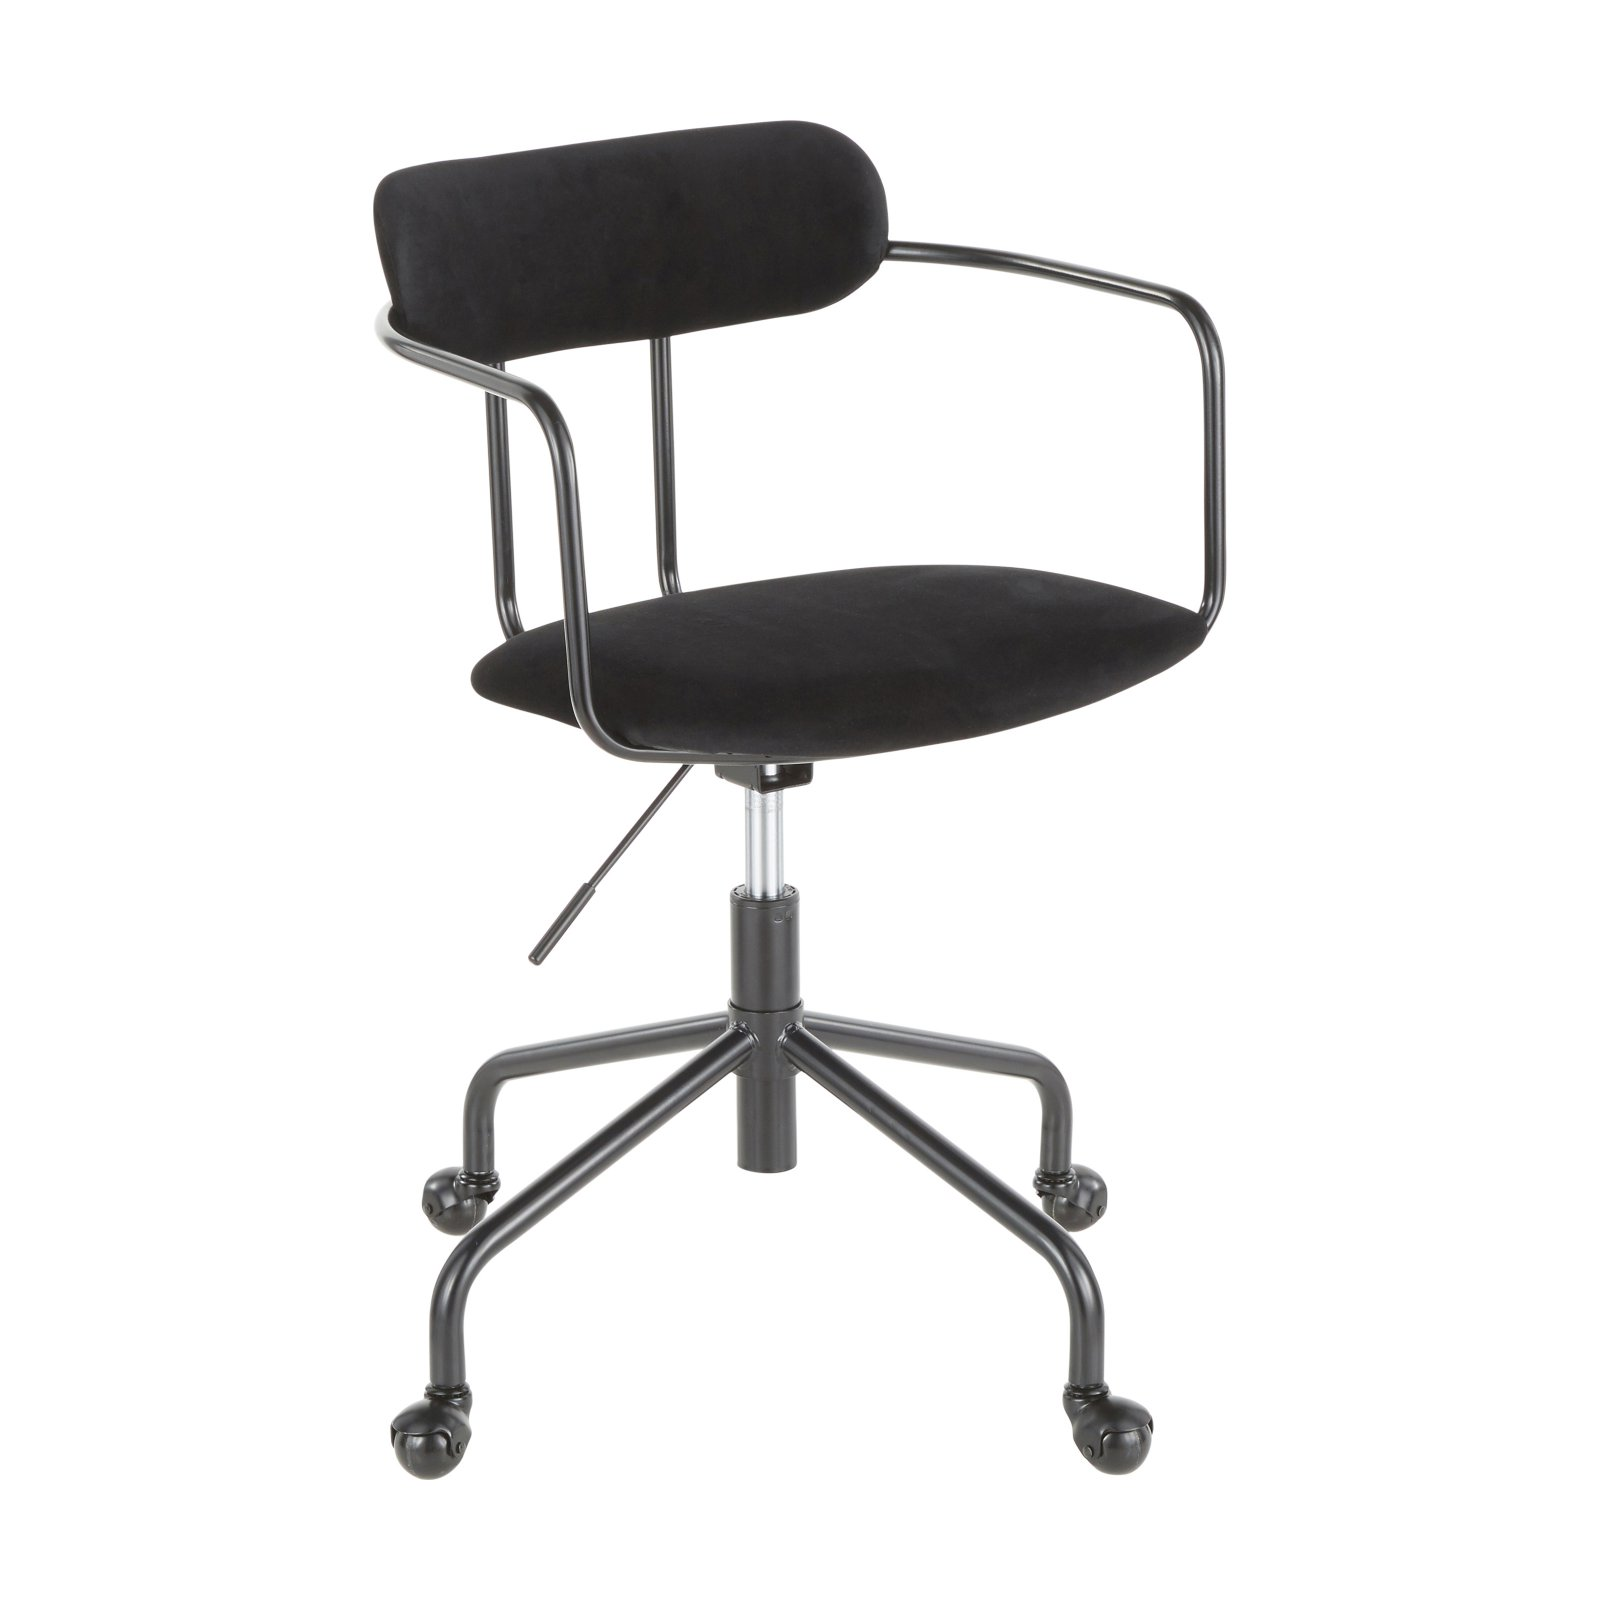 LumiSource Demi Contemporary Office Task Chair - Walmart.com